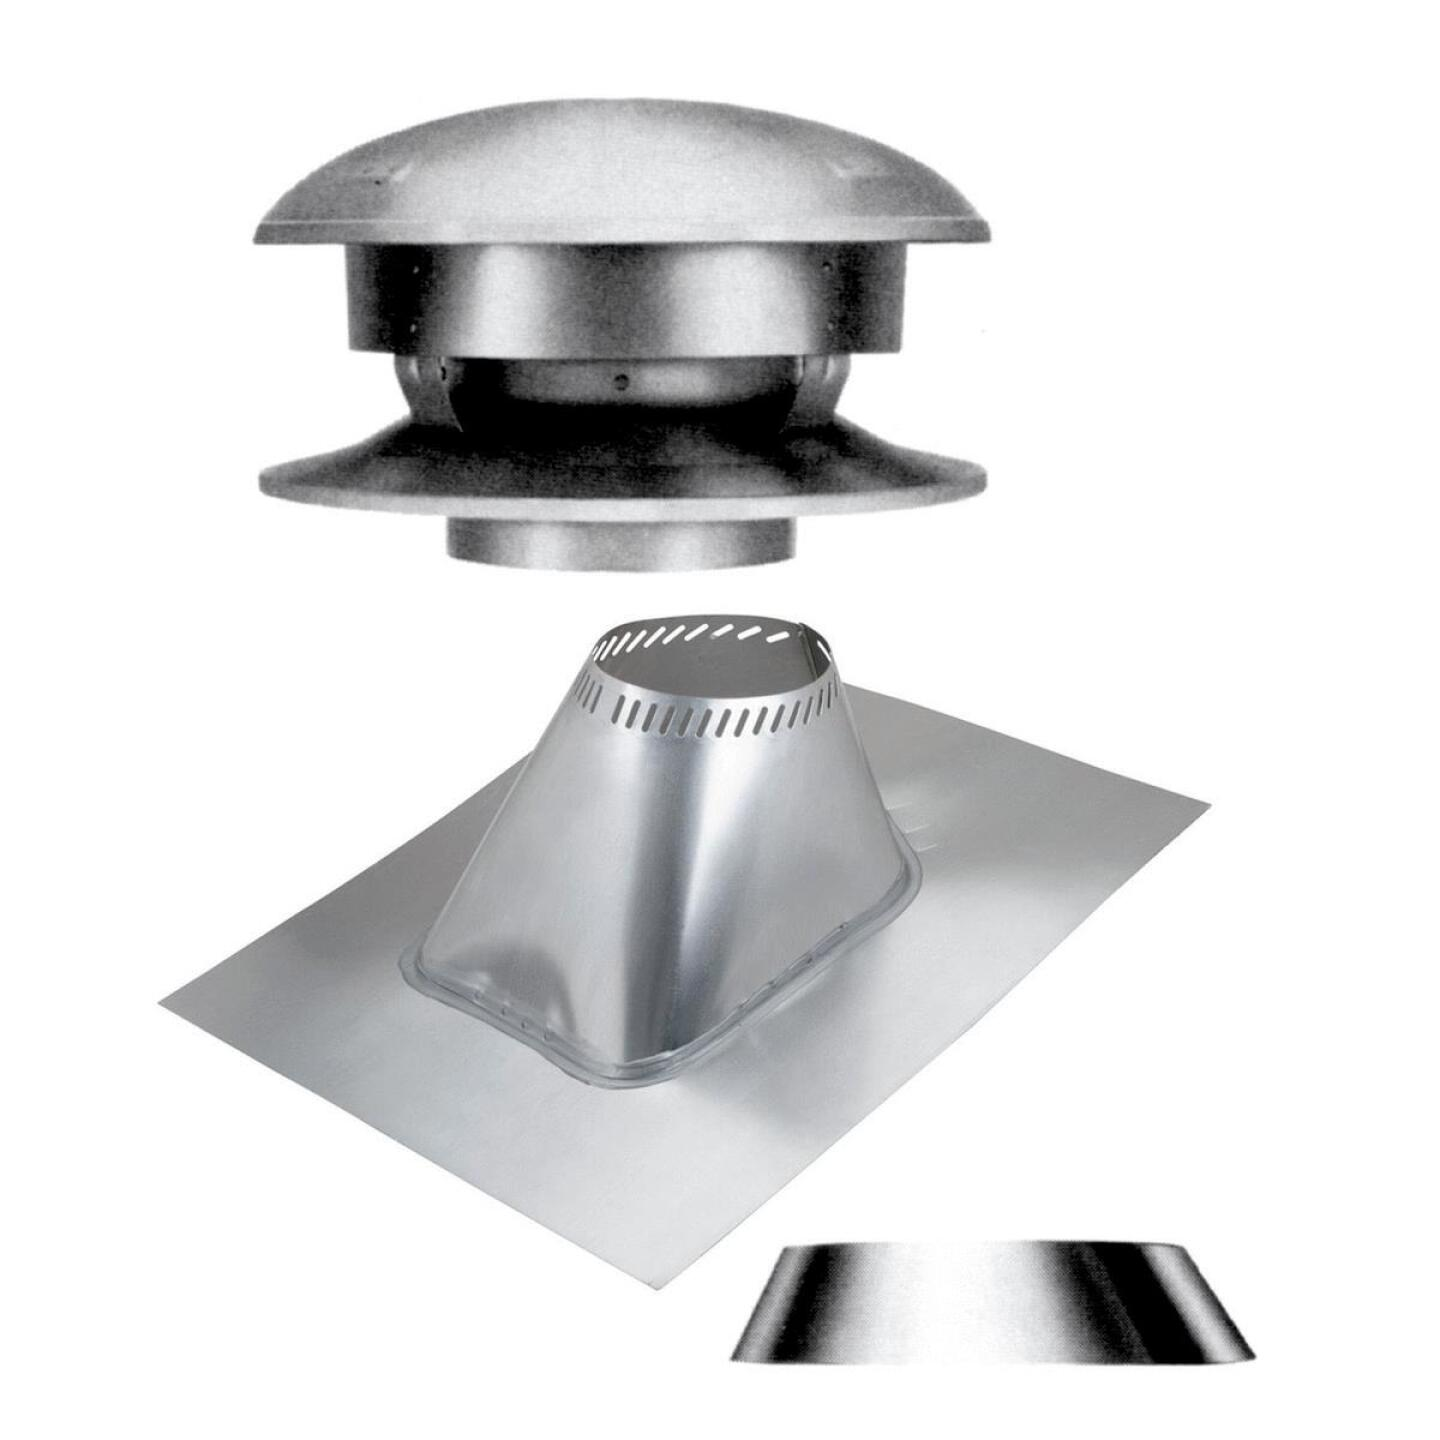 SELKIRK Sure-Temp 8 In. Stainless Steel Round Top Chimney Kit Image 1